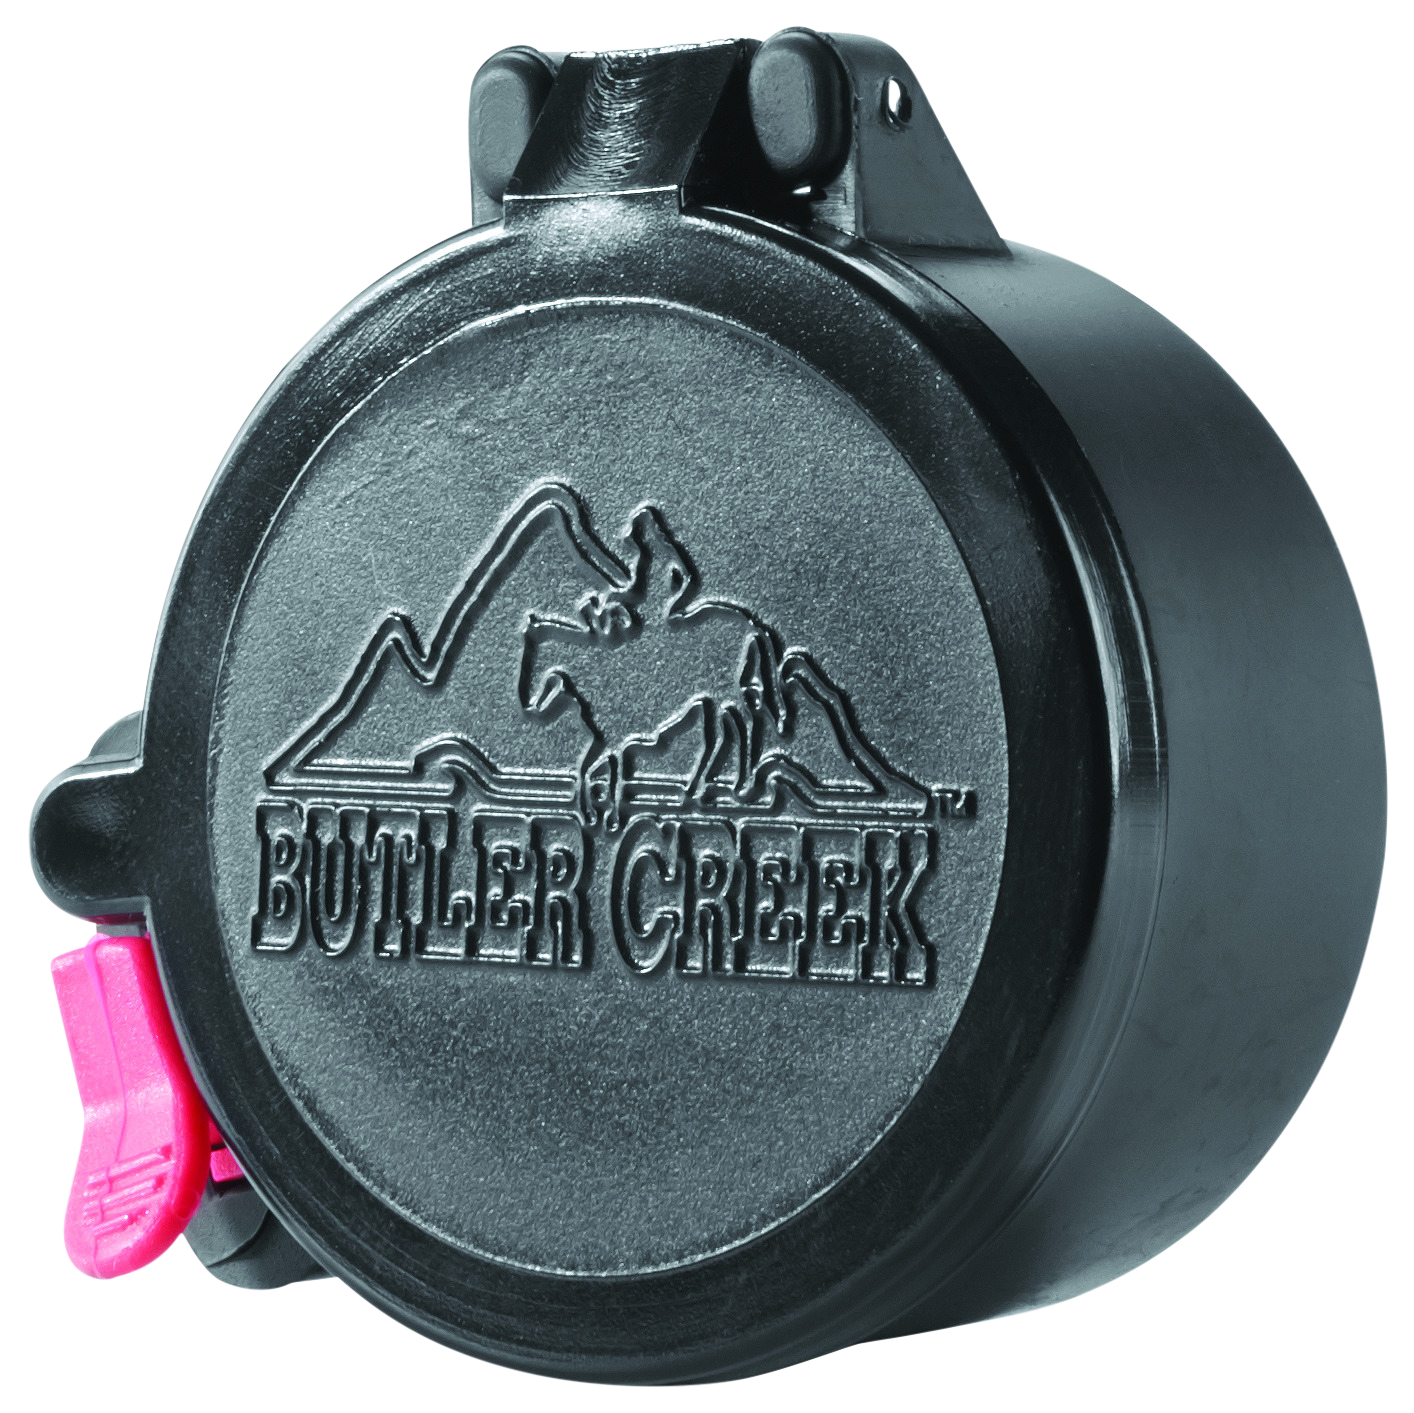 Butler Creek 20190 Flip-Open Scope Cover Eye Piece Cover 1.7